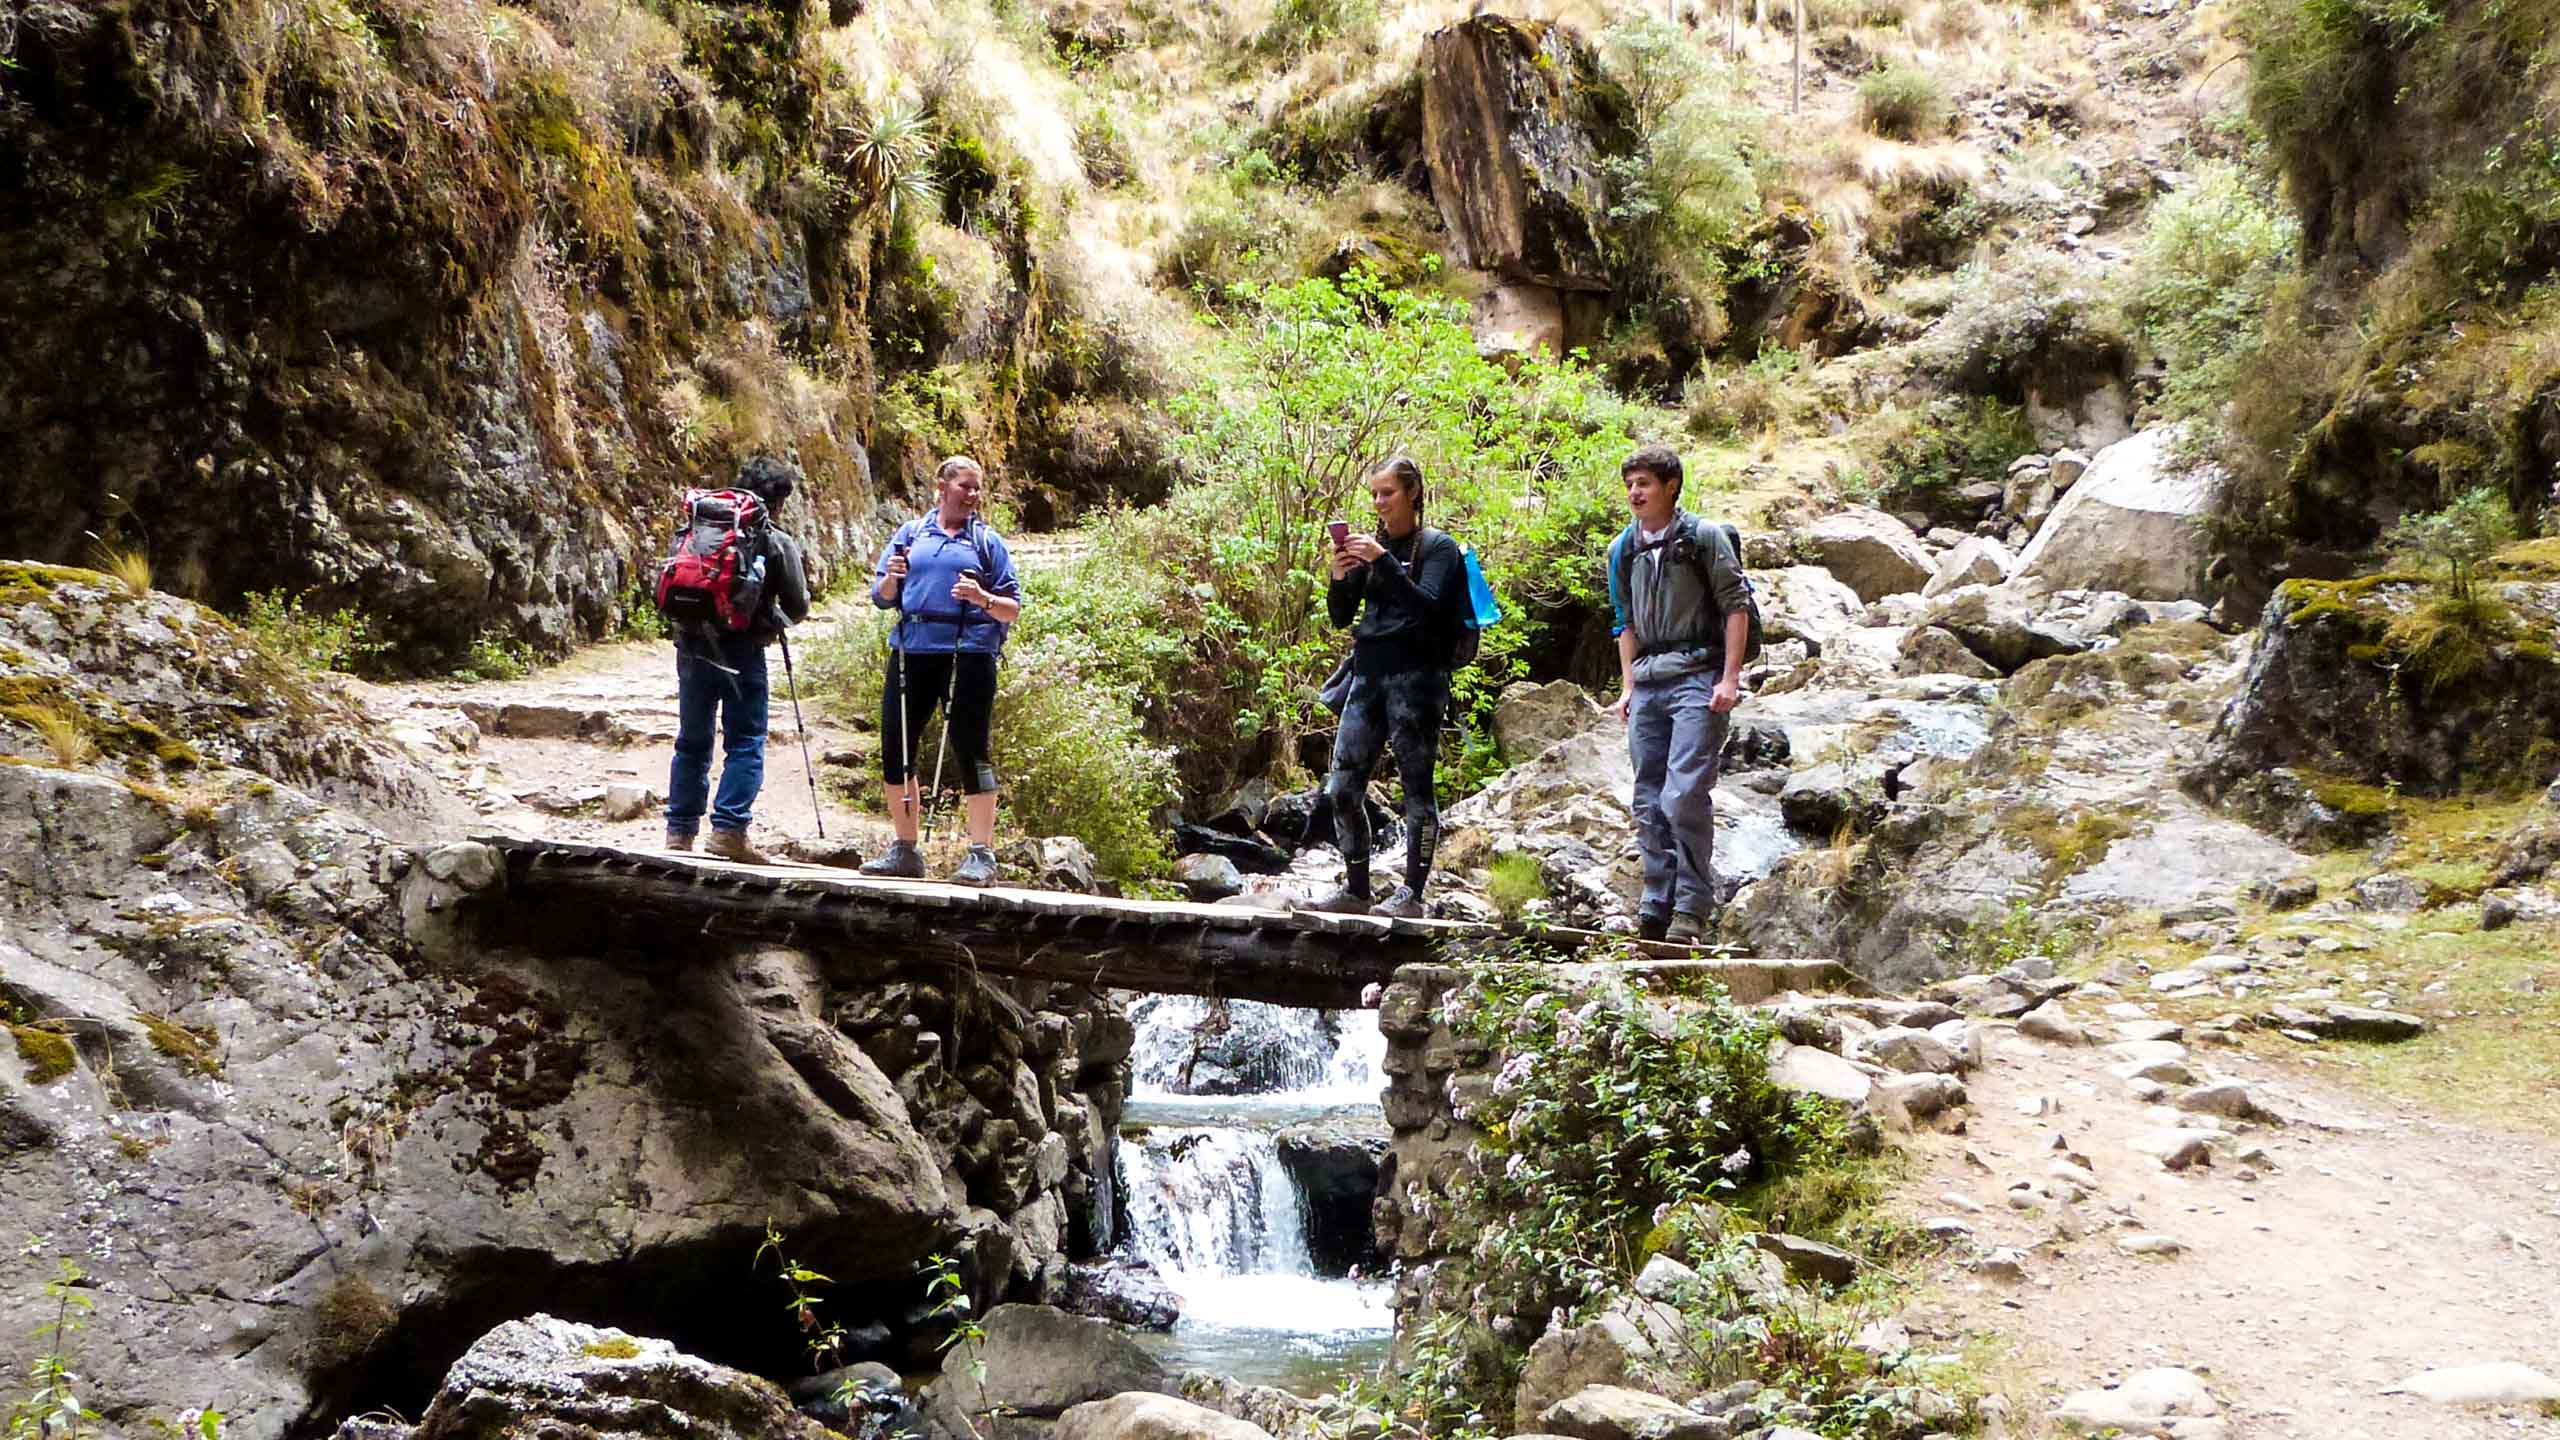 Travel group hikes across stream in Peru